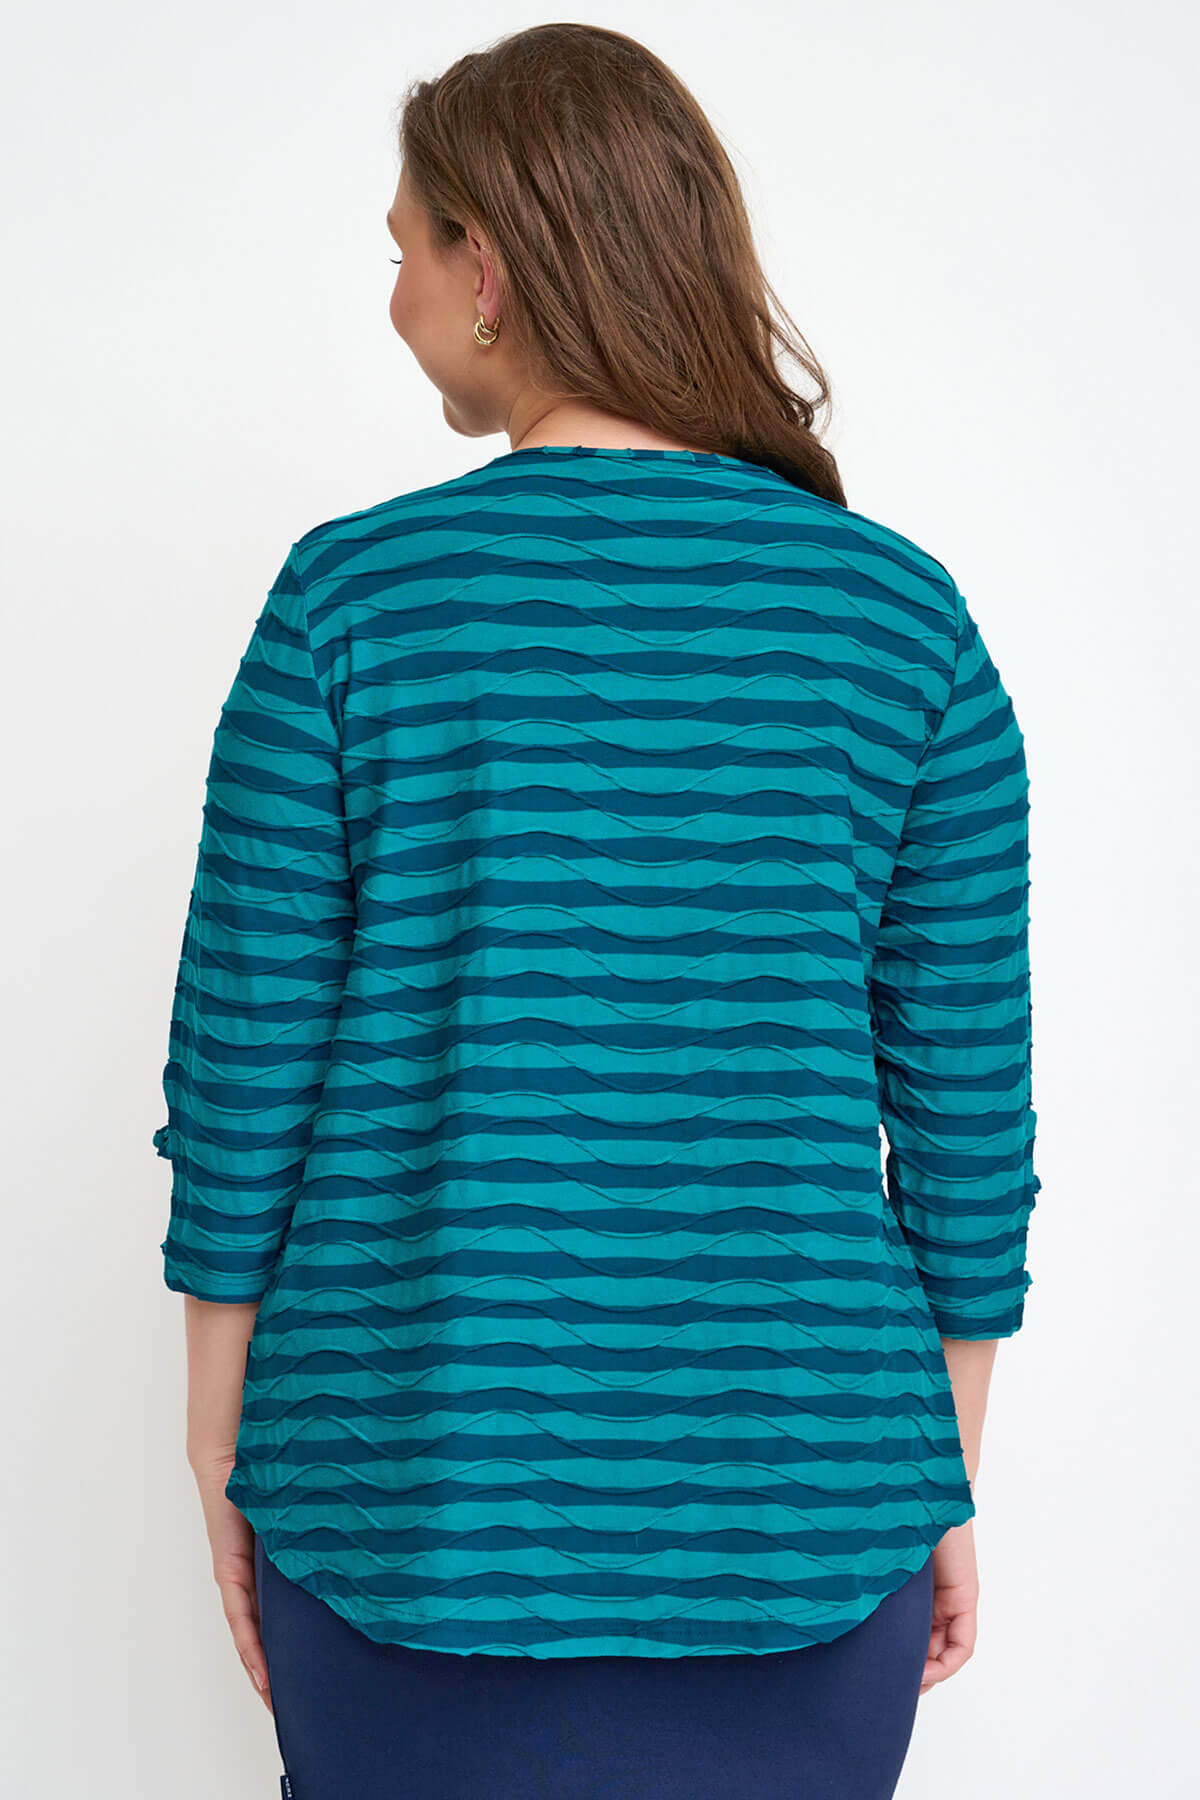 Pont Neuf Melly wave top